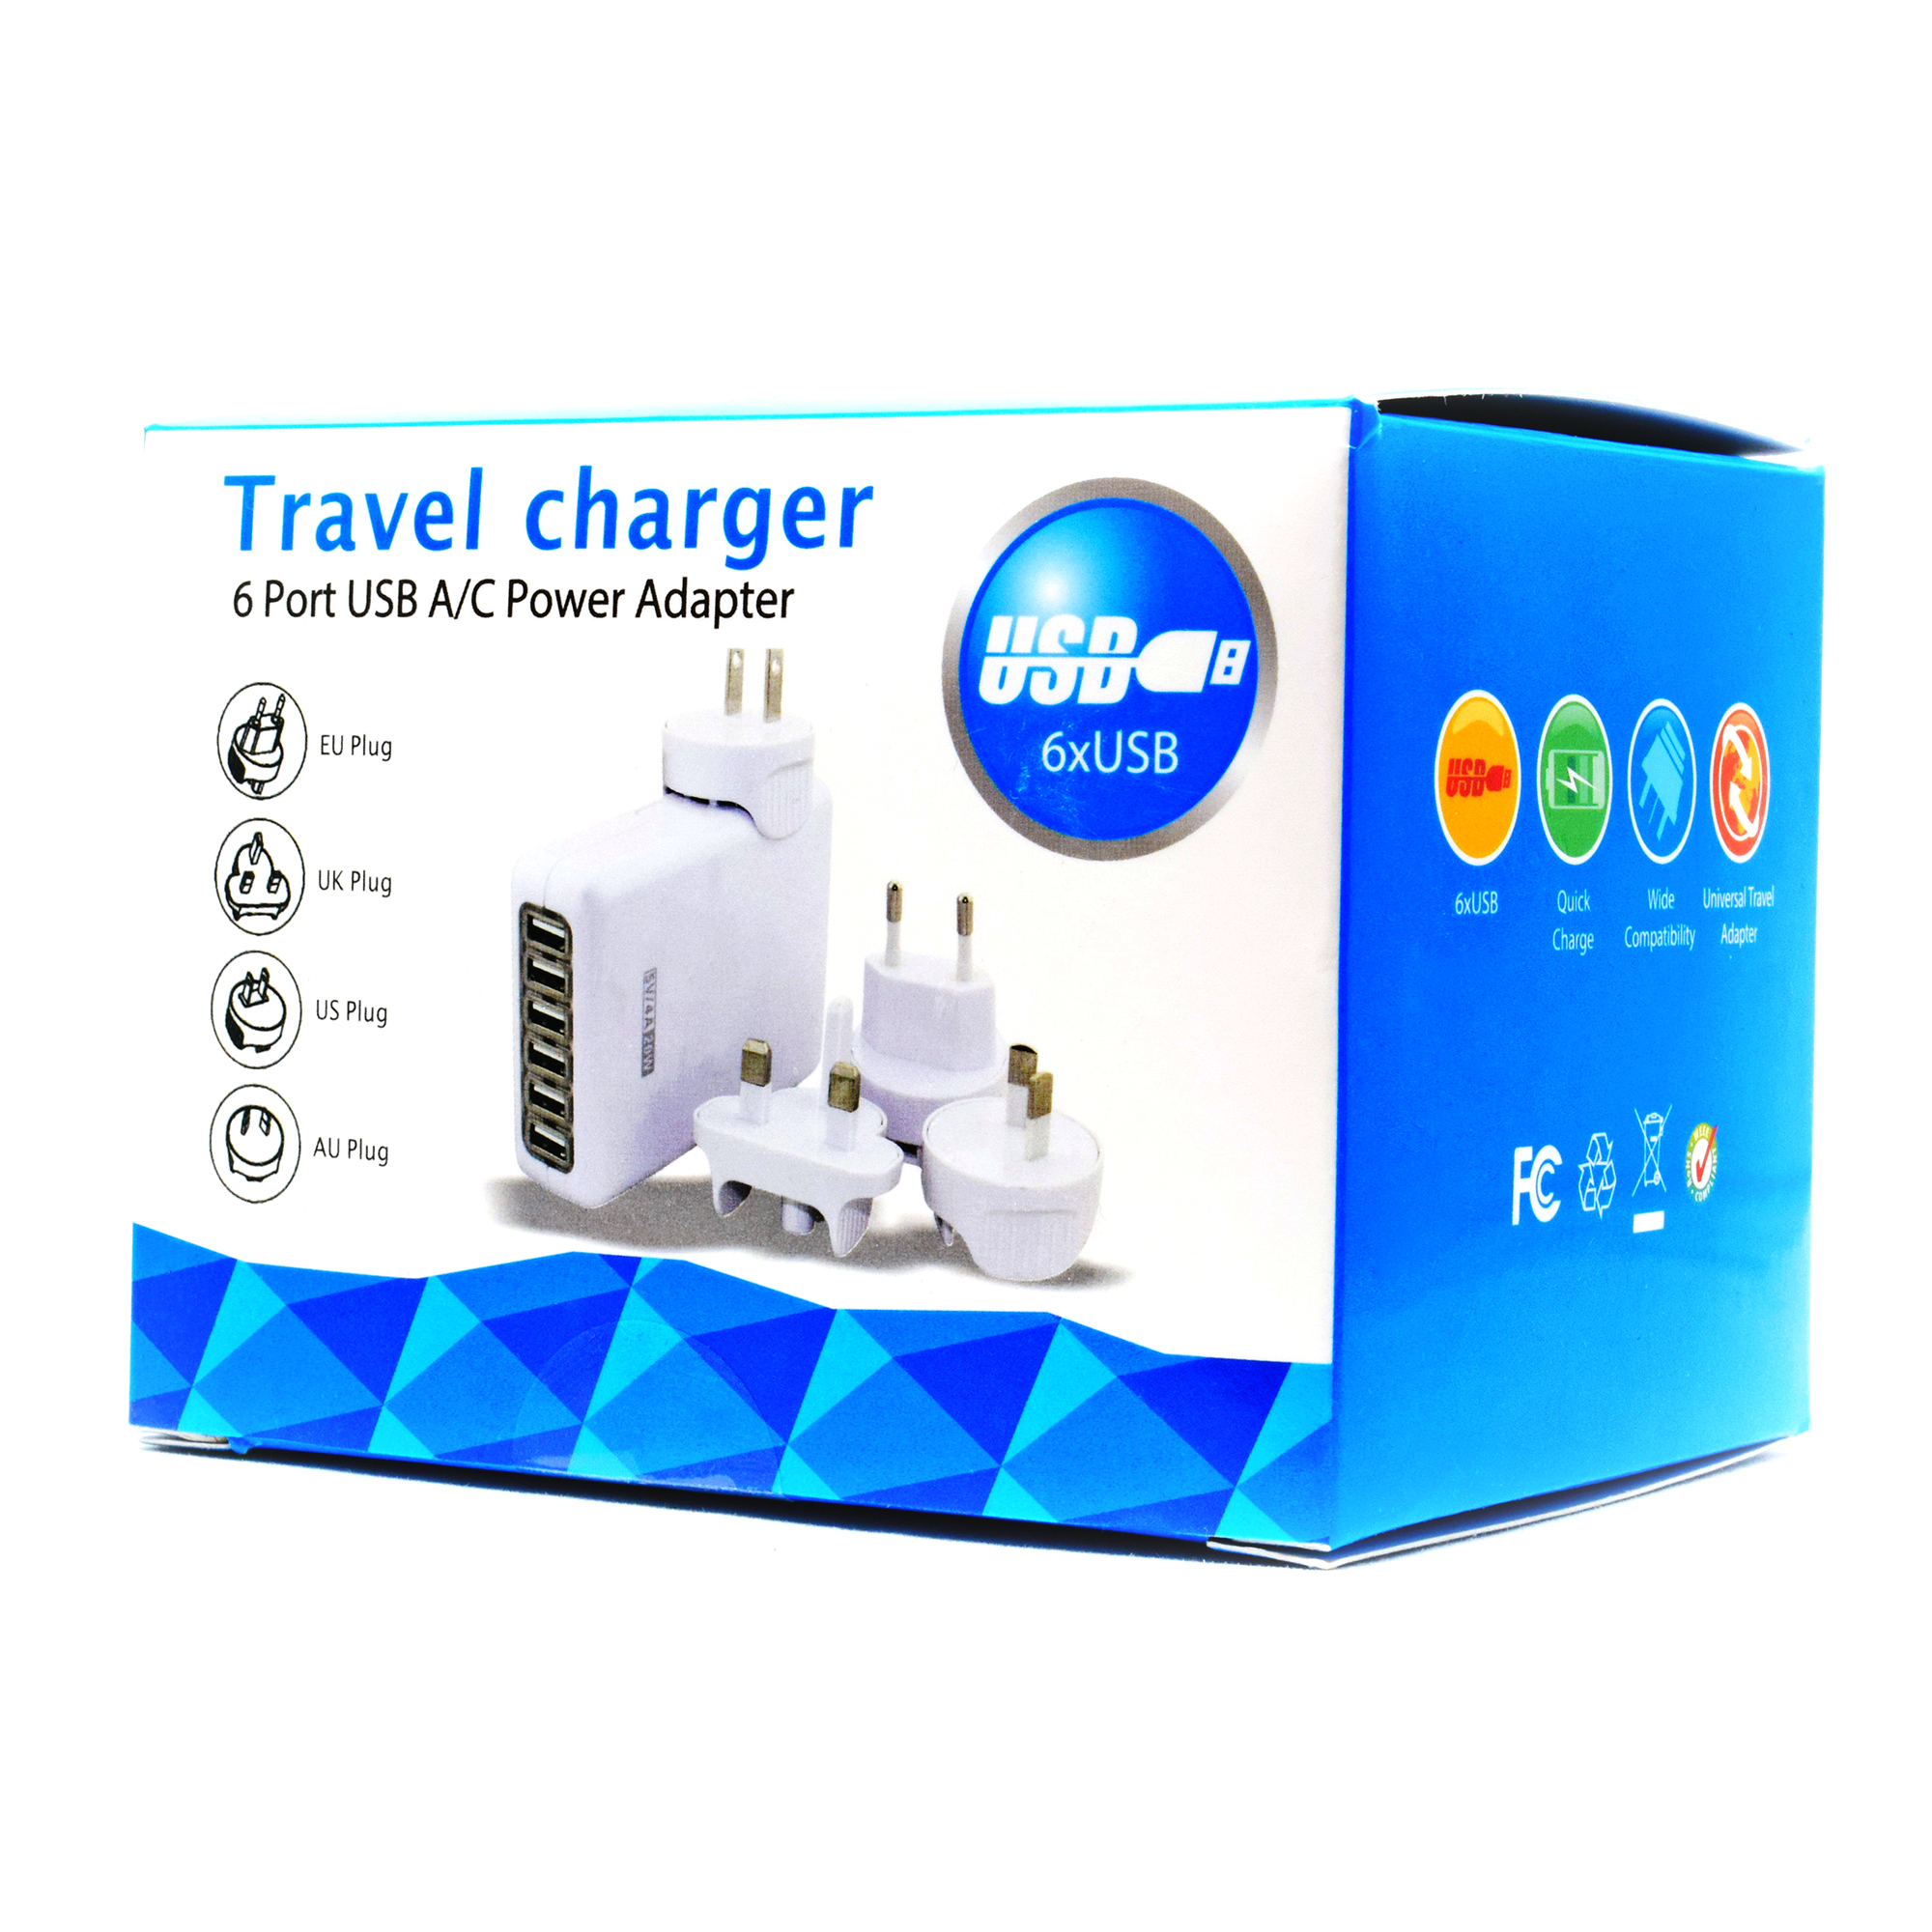 Universal Travel Charger Ultra Compact 6 Port USB AC Power Adapter Perfect for any MP3, iPod or Cell Phone - Includes Eu Plug, UK Plug, US Plug and Au Plug